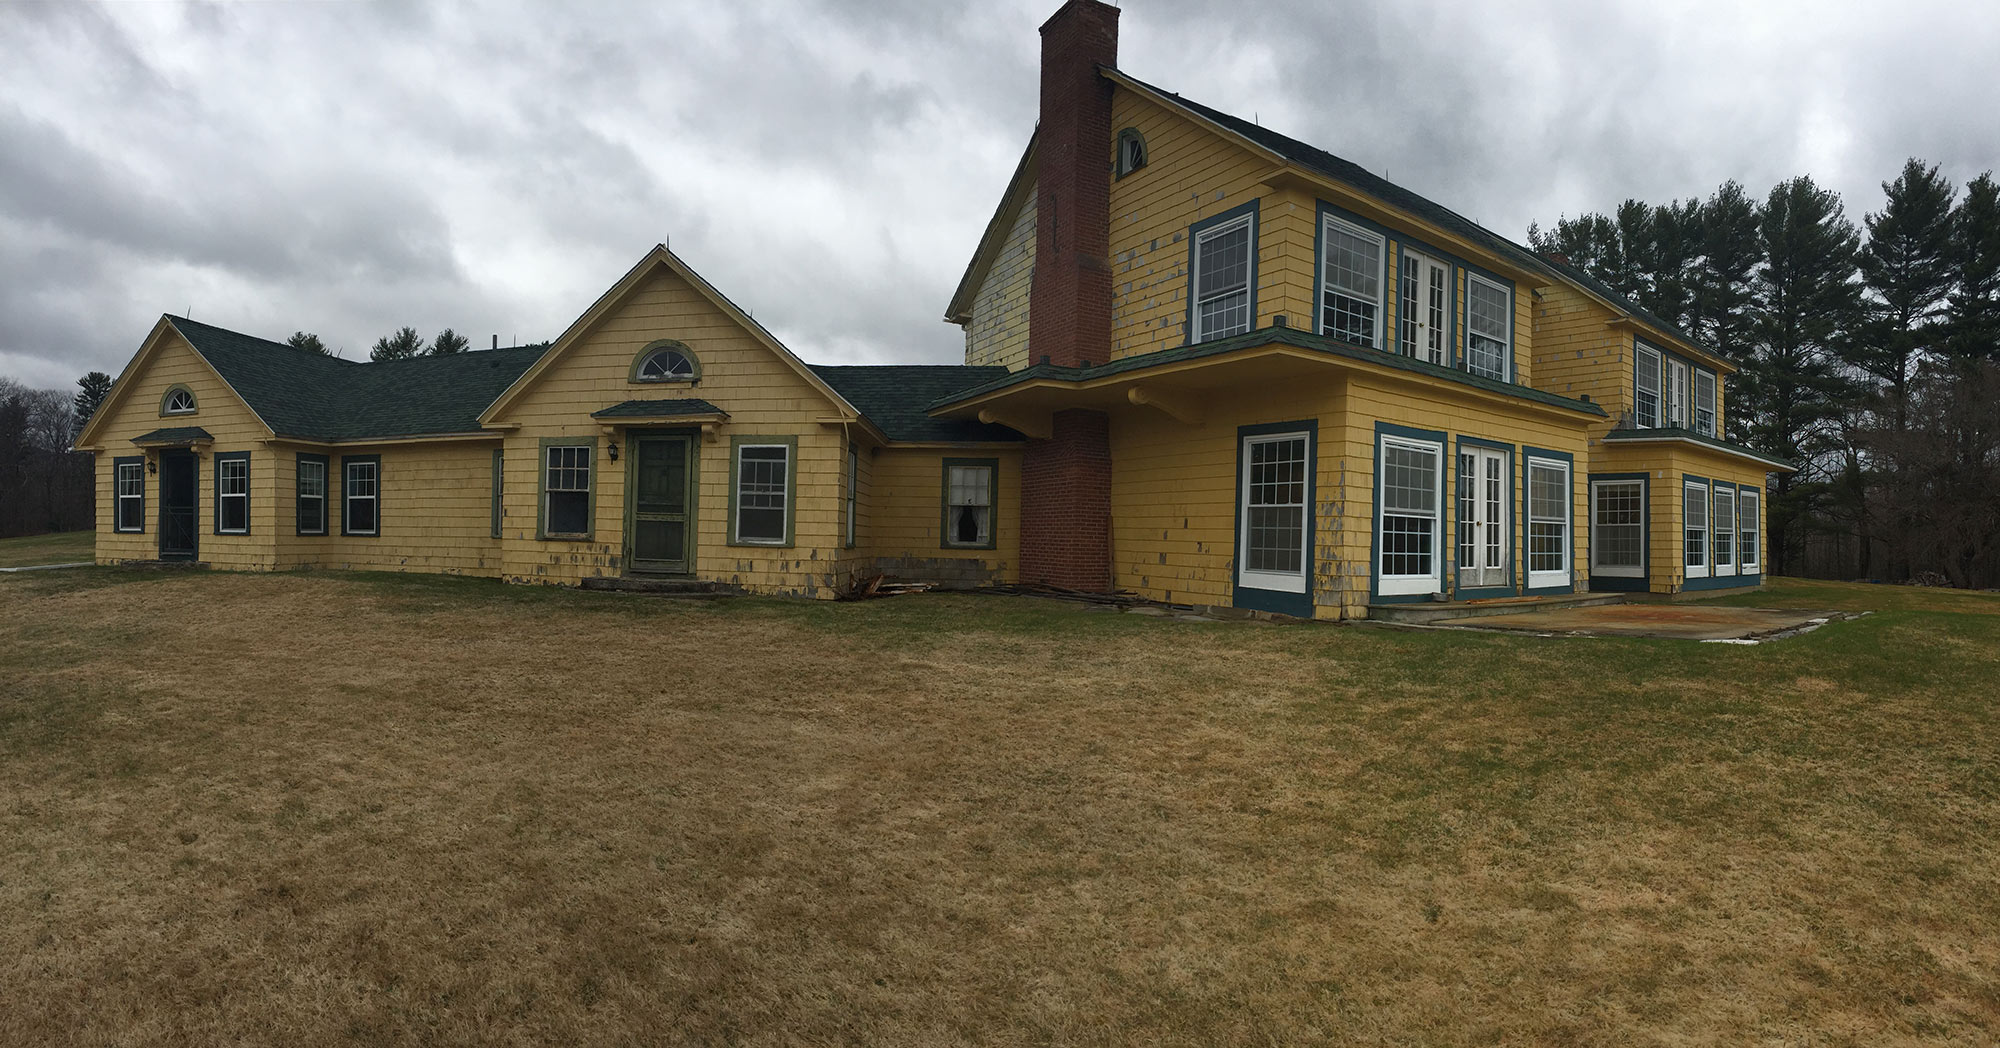 The Maine Chance Lodge before renovations began.